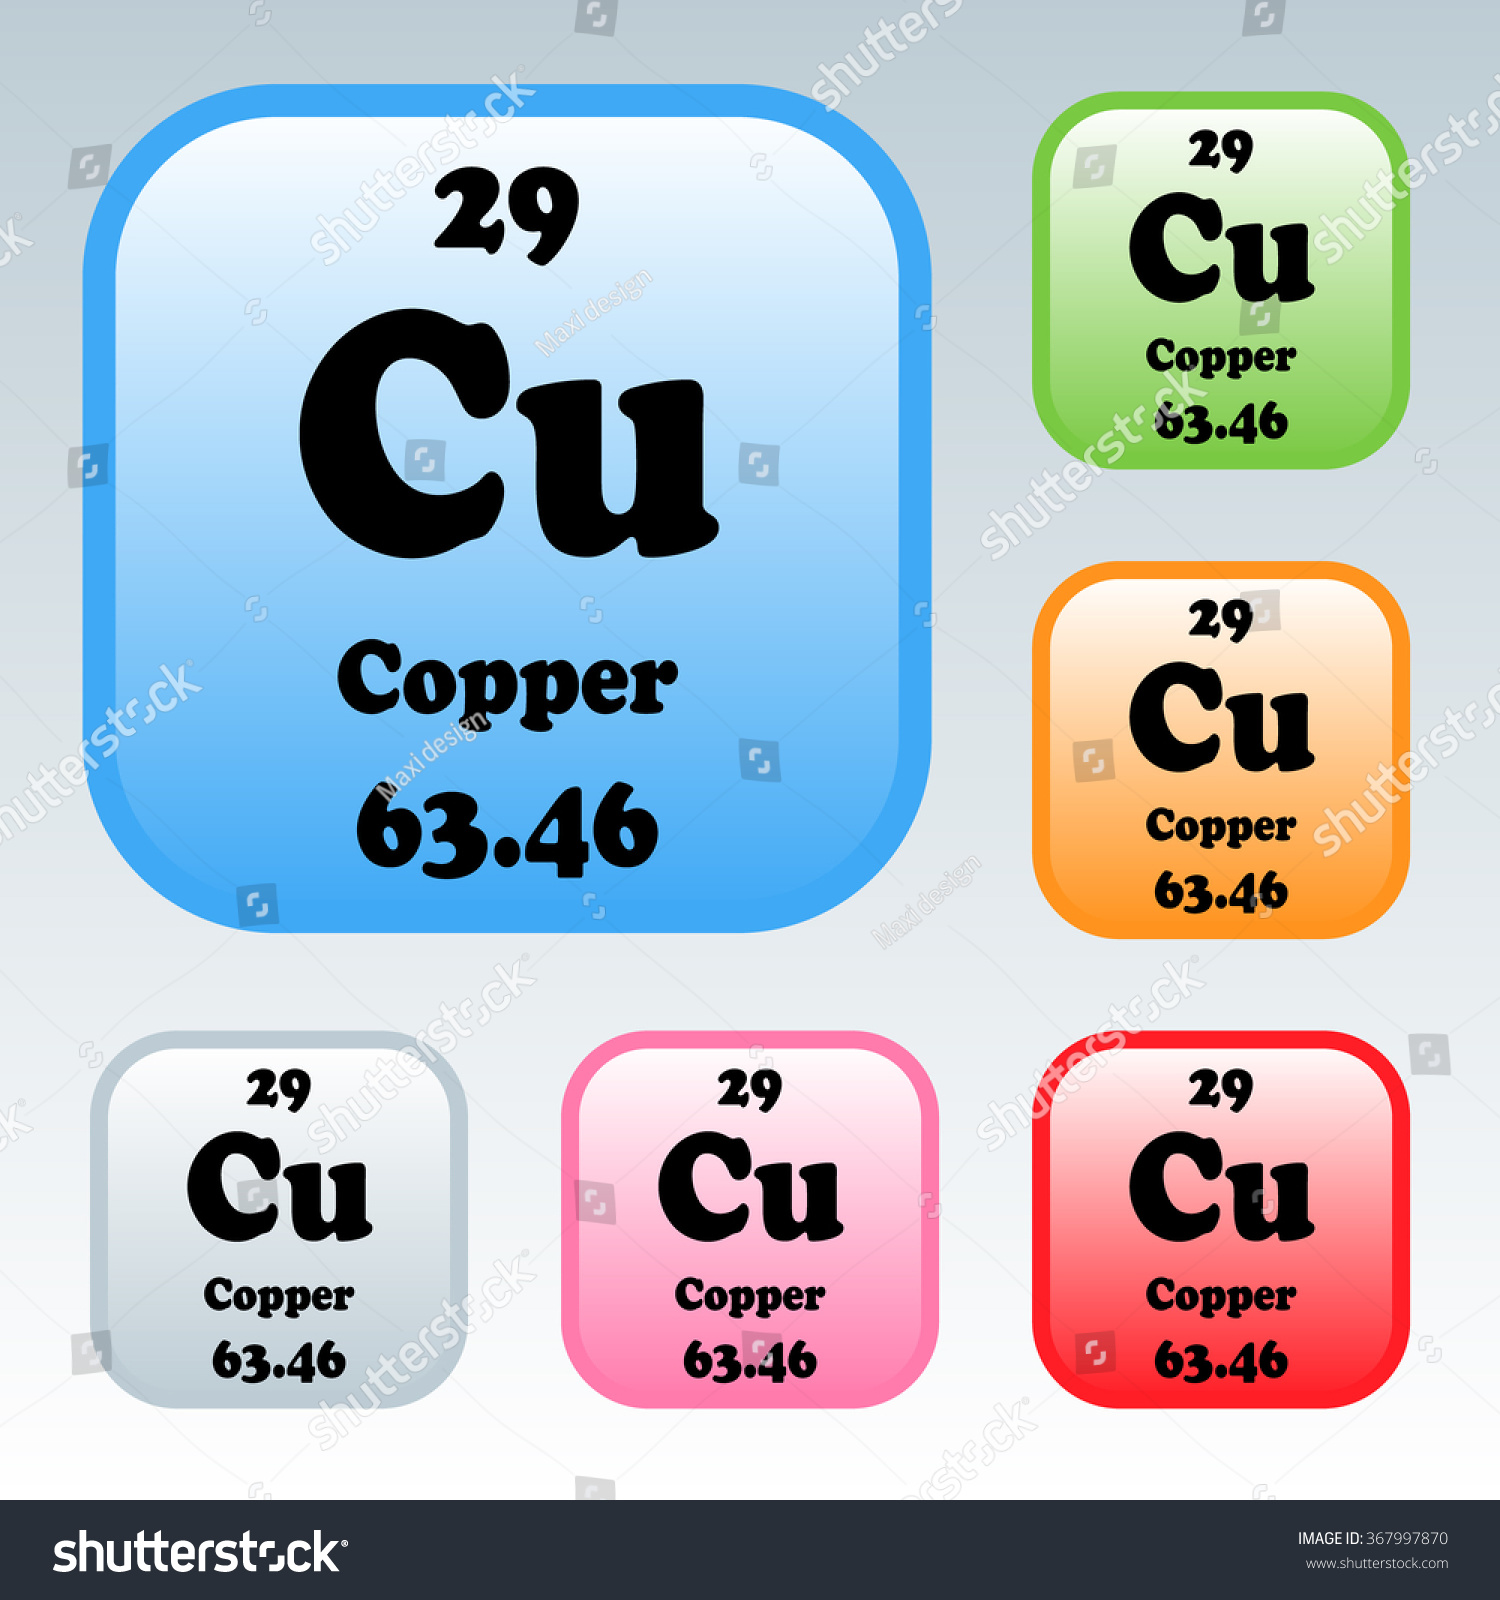 Periodic table elements copper stock vector 367997870 shutterstock the periodic table of the elements copper biocorpaavc Choice Image